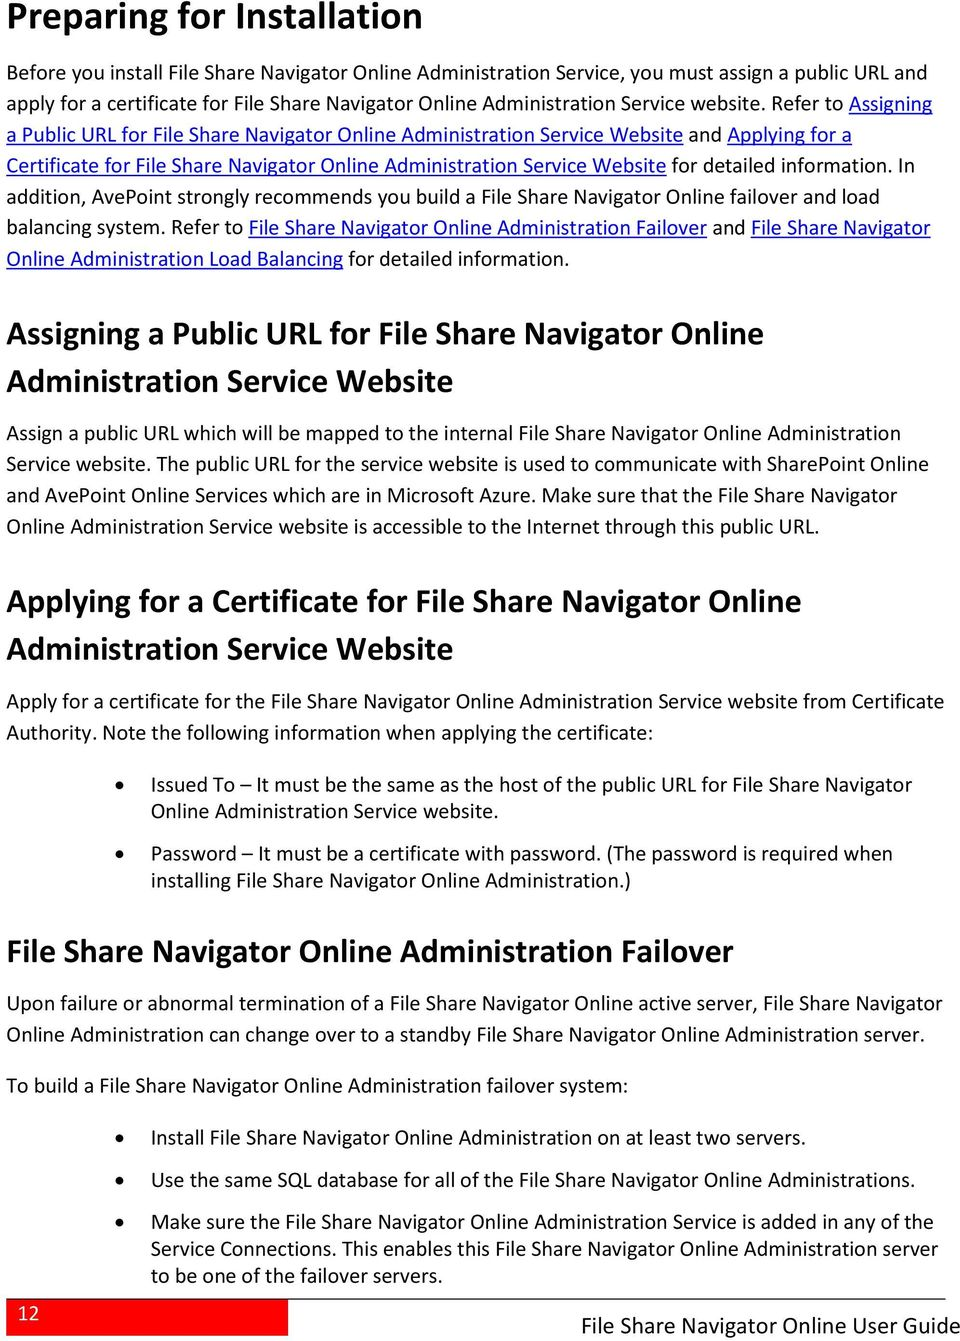 Refer to Assigning a Public URL for File Share Navigator Online Administration Service Website and Applying for a Certificate for File Share Navigator Online Administration Service Website for